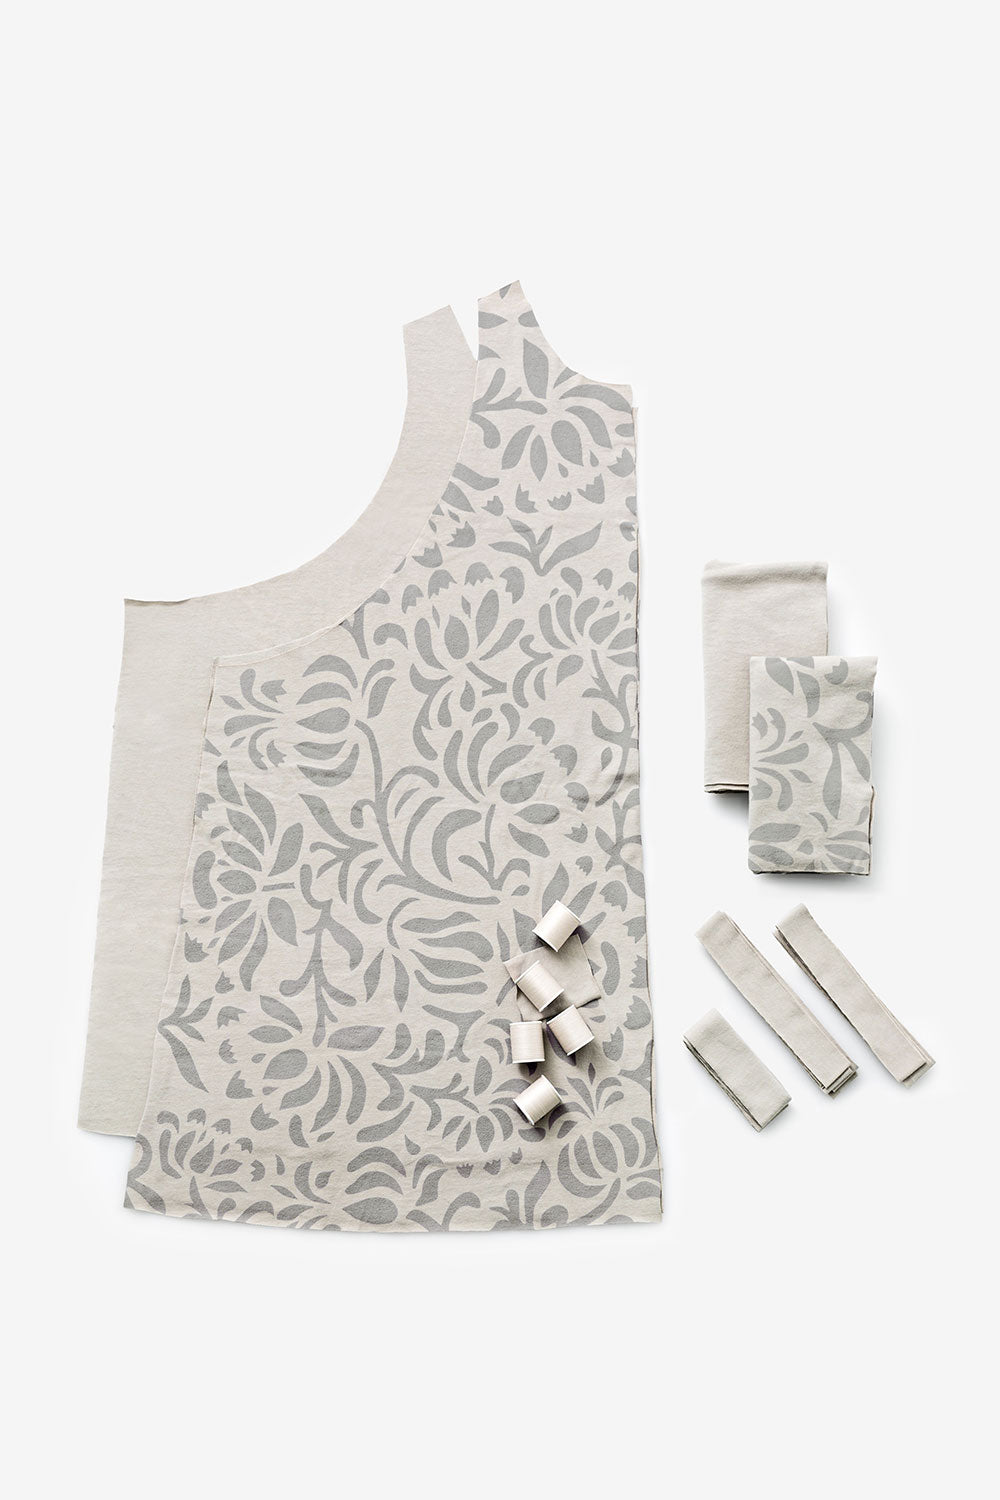 The School of Making Maggie Tunic Kit Organic Cotton DIY Kit Contents Handsewn